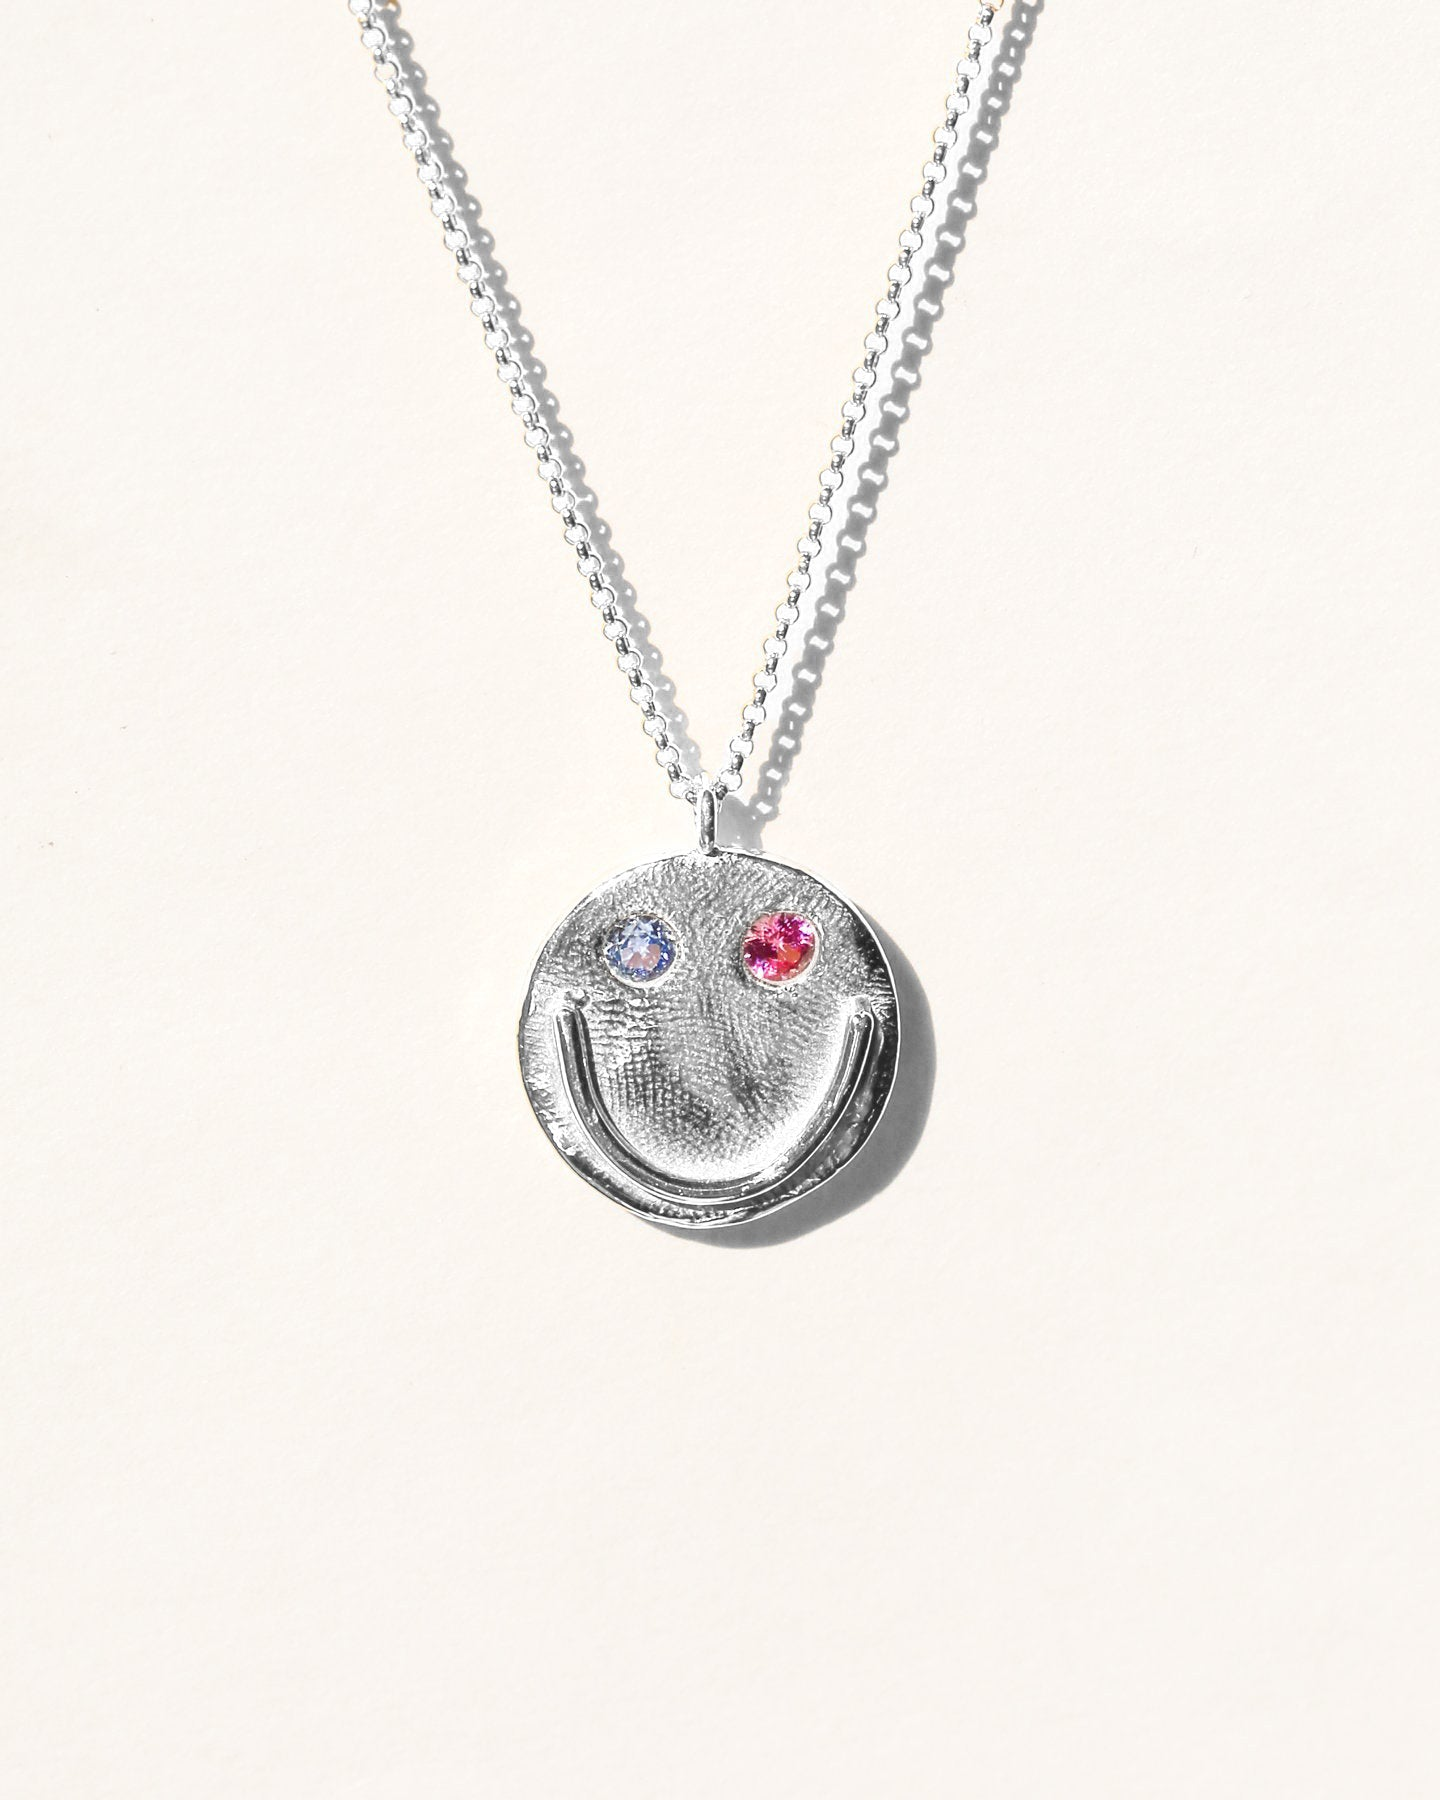 GOOD FRIEND NECKLACE IN SILVER